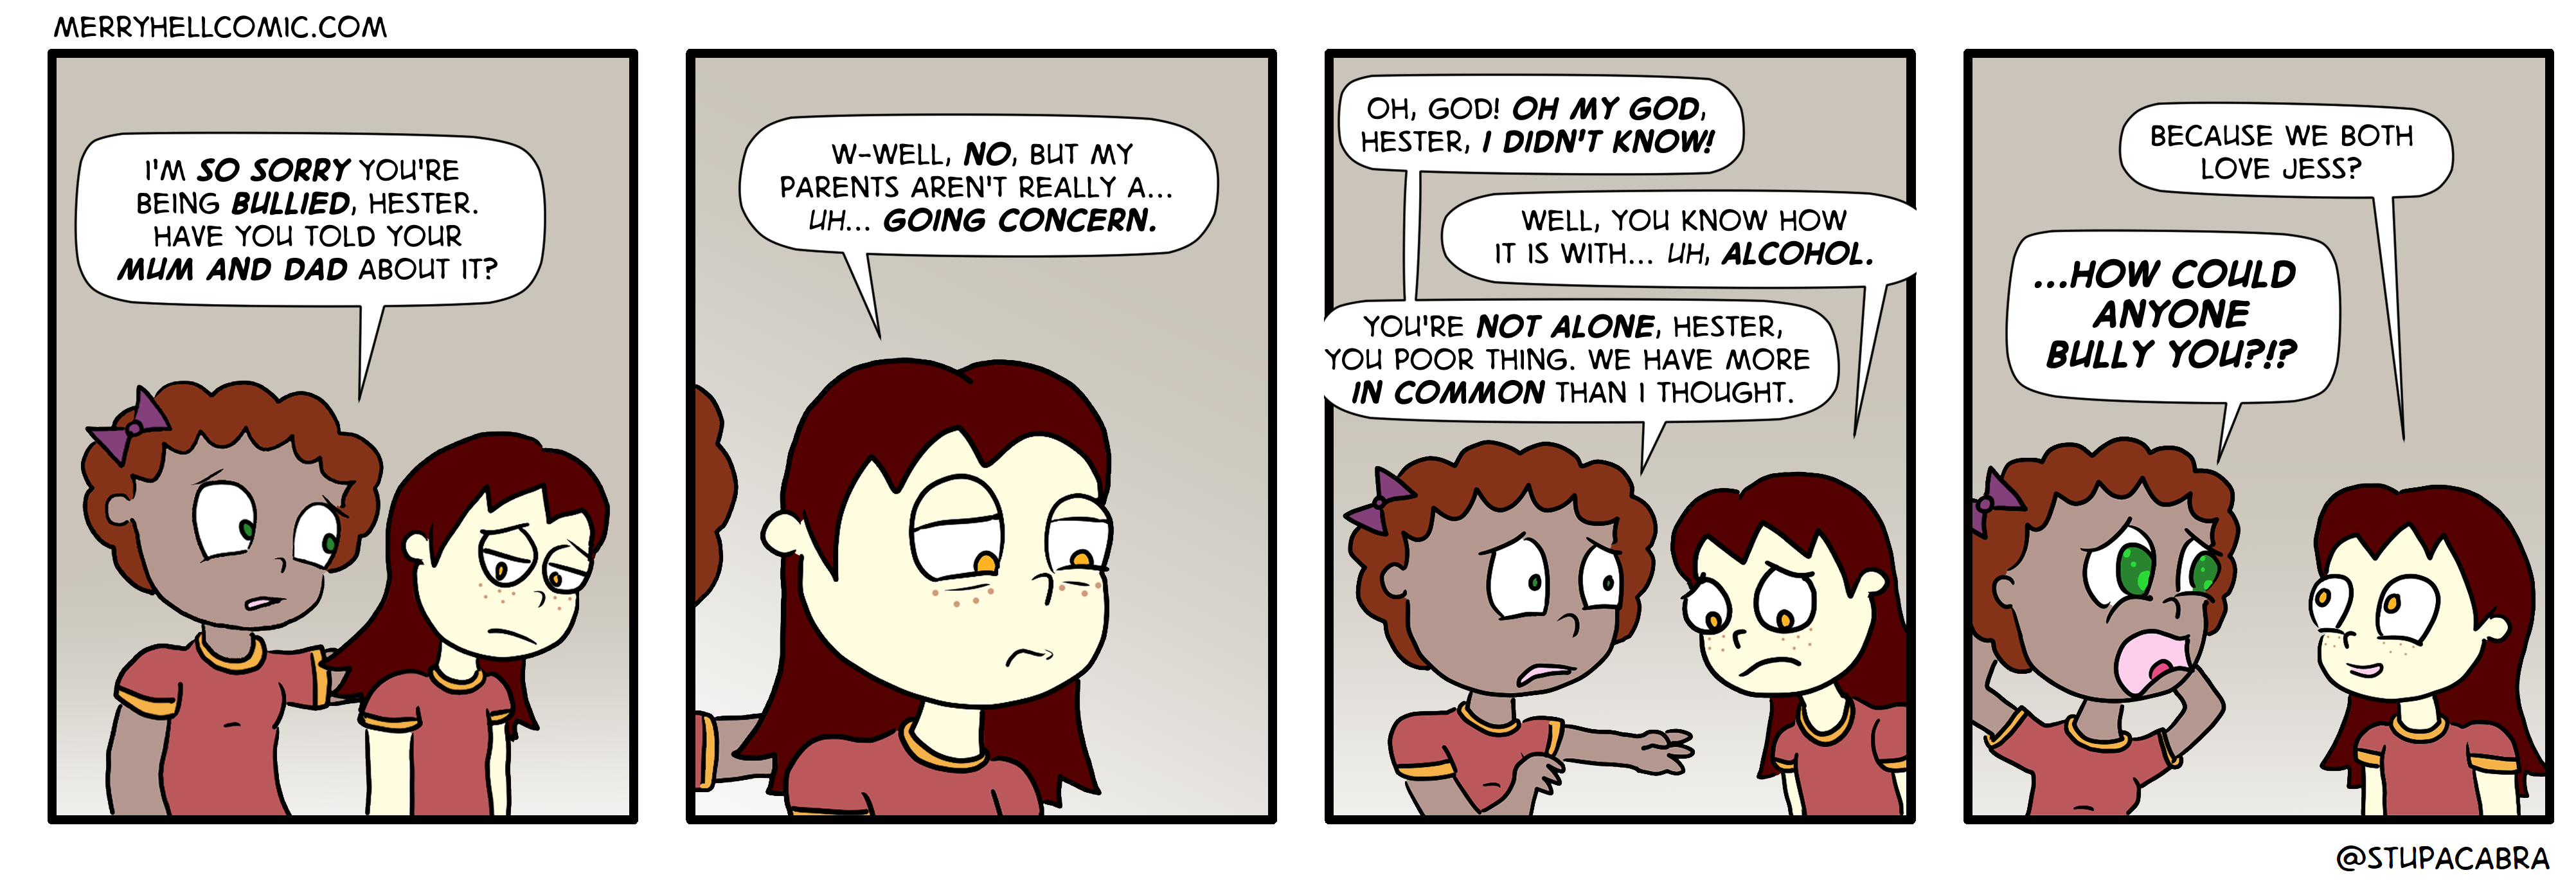 248. A going concern